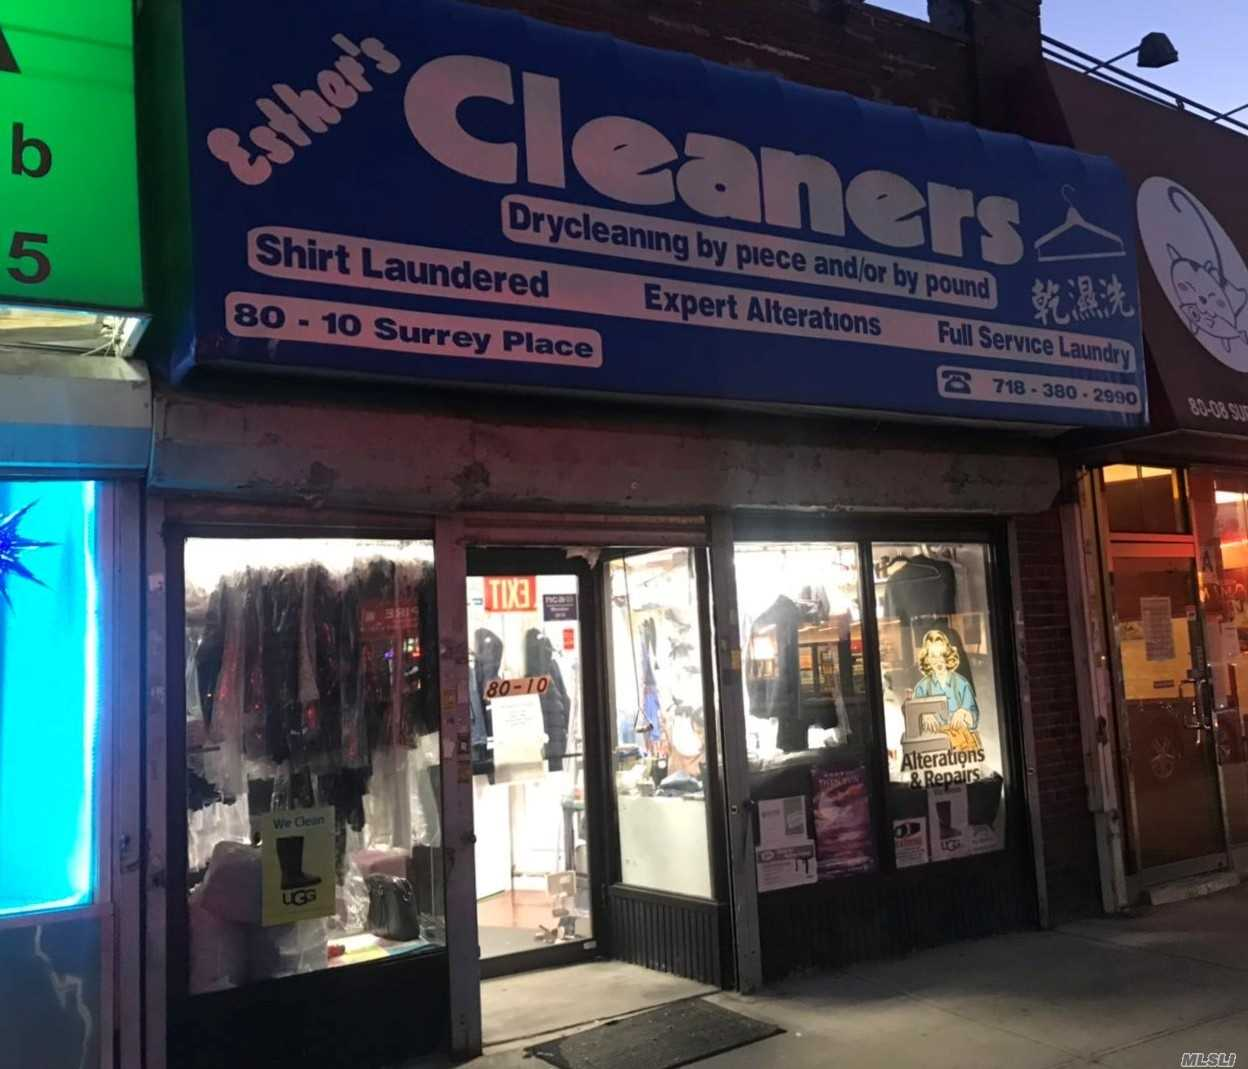 Dry Cleaner Busy Business Area 900 Sf Retail Space.Business Has Been Established For The Past 10 Yrs. There Is 1 Years Left , And The Lease Will Renew Every 5 Years.